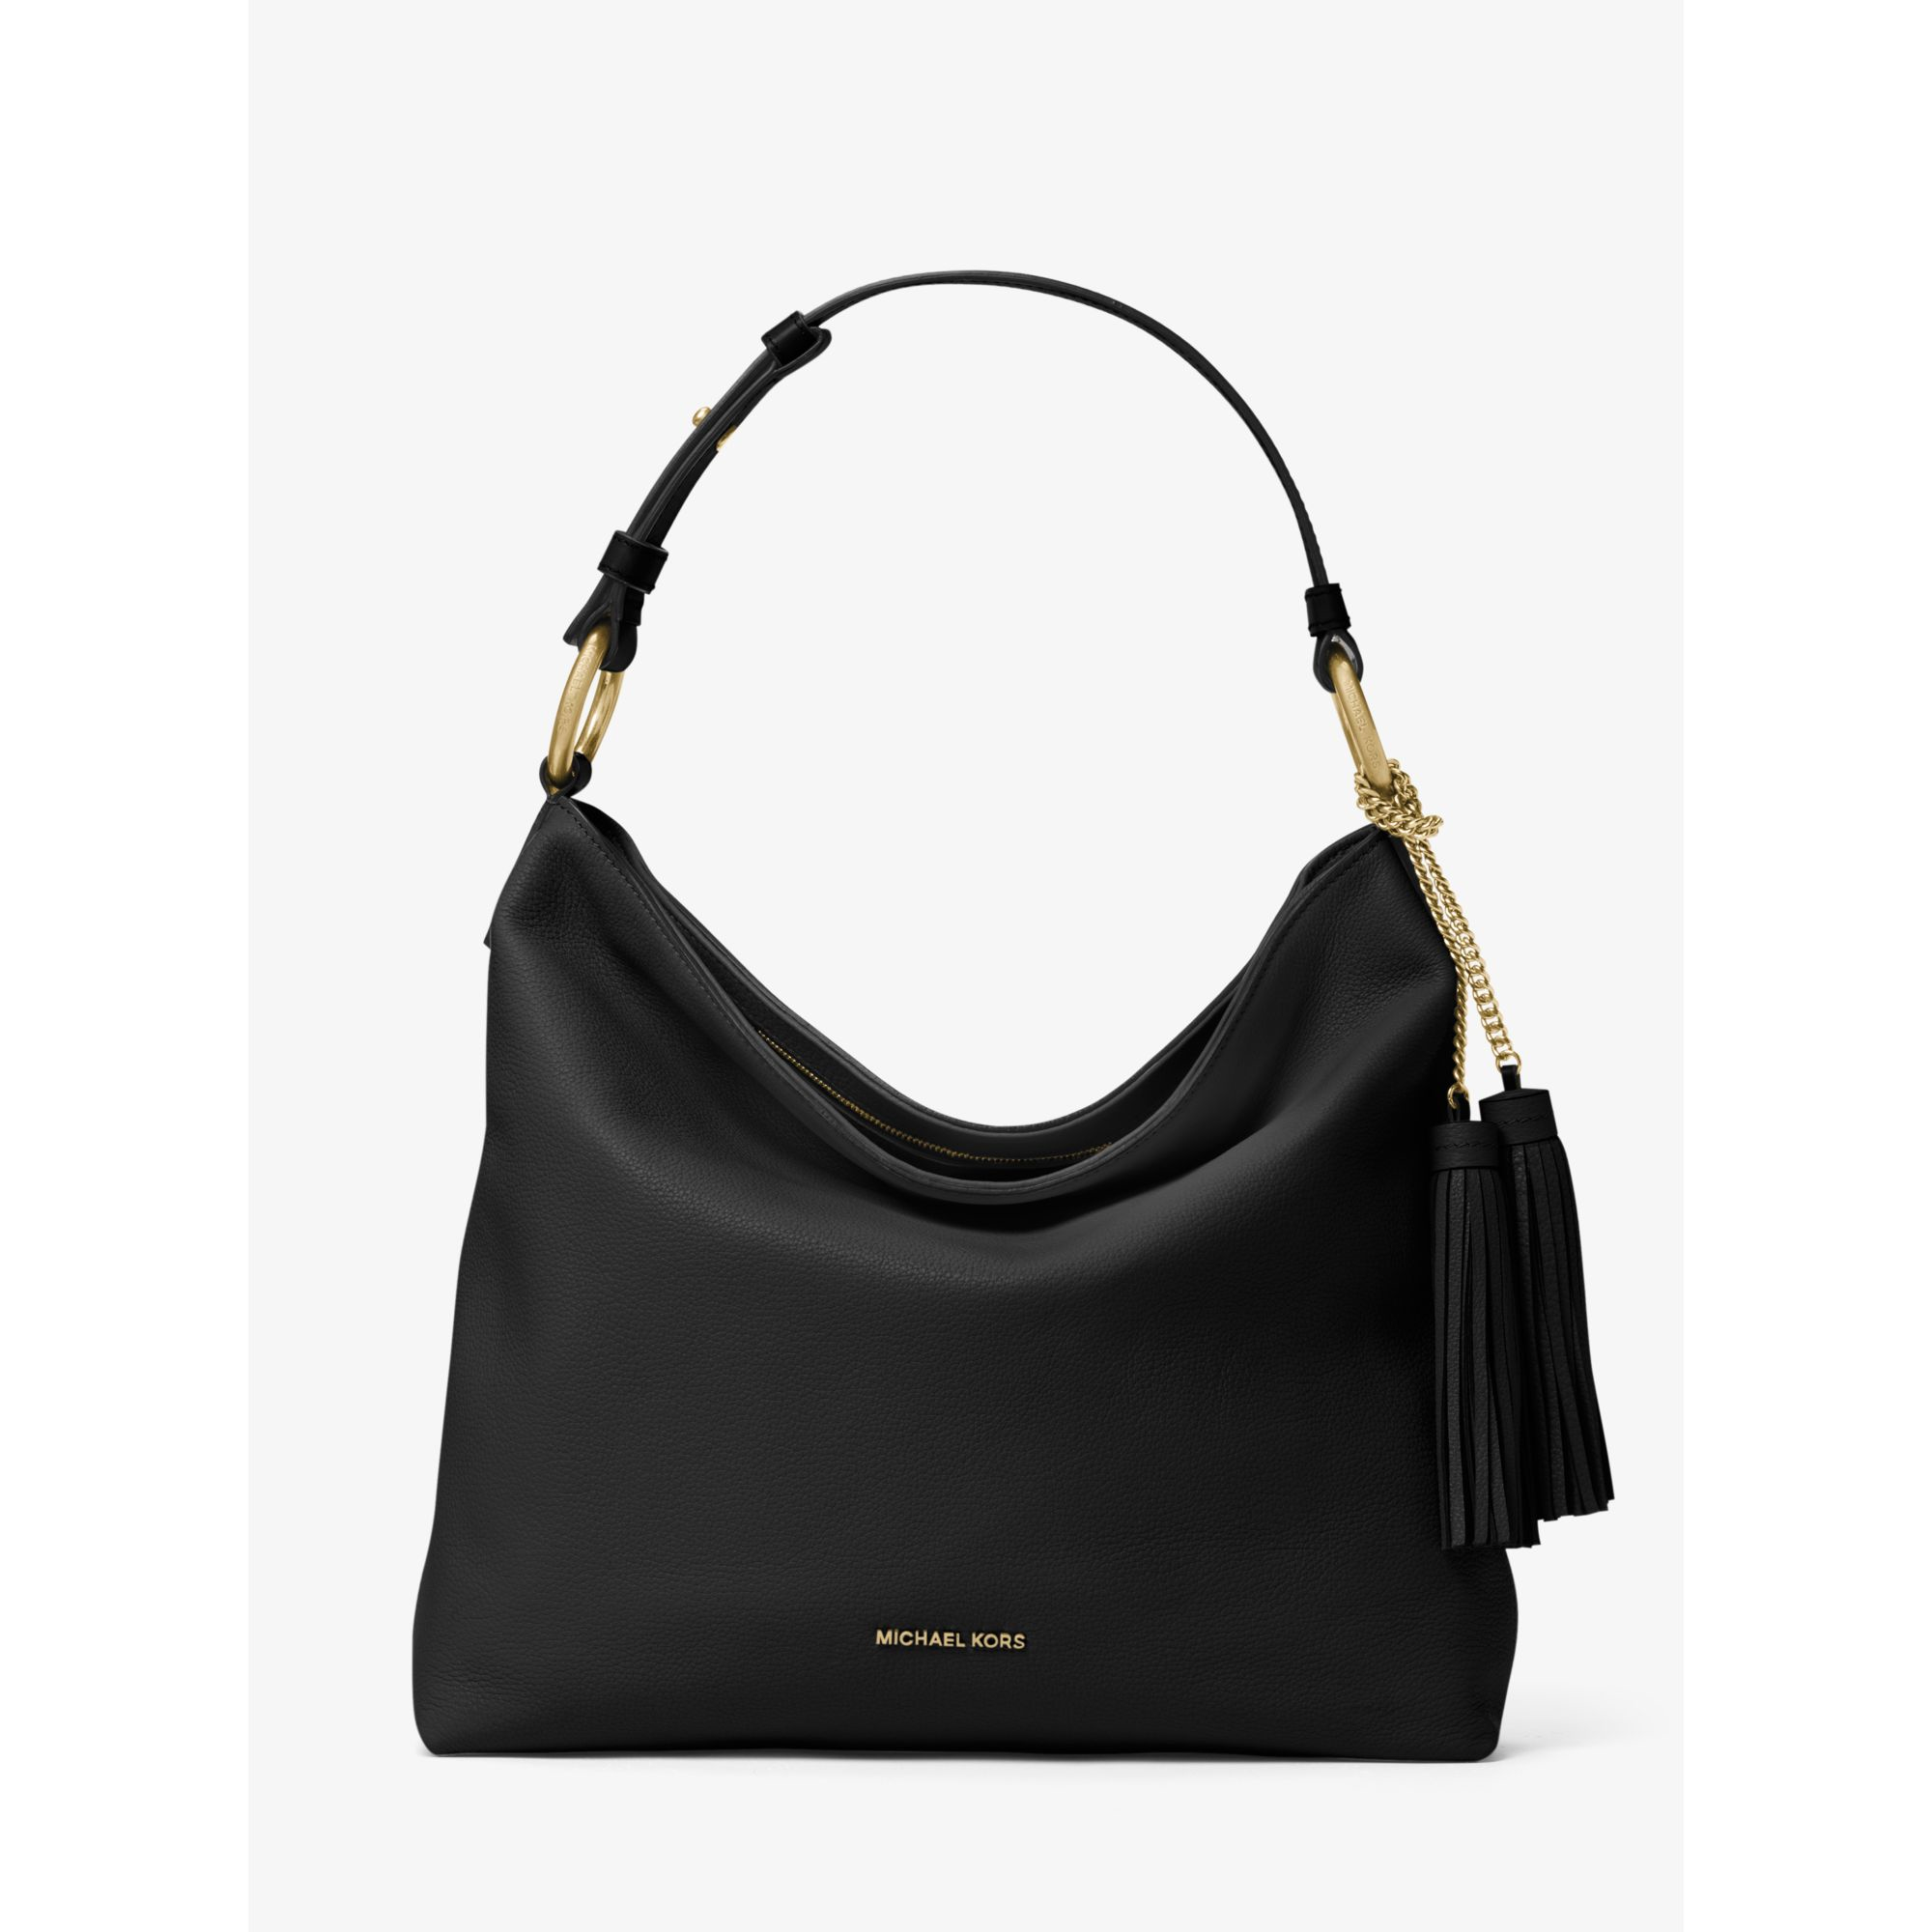 Michael kors Elyse Large Leather Shoulder Bag in Black | Lyst